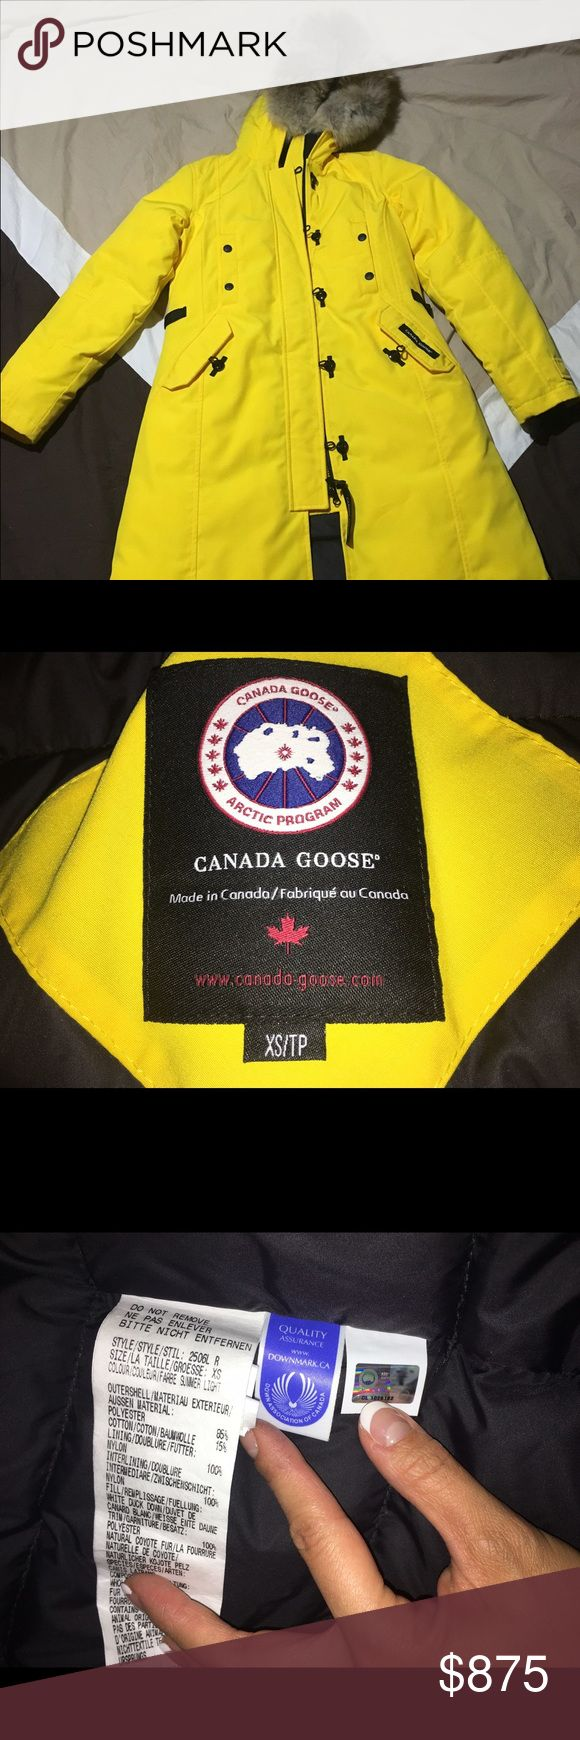 Canada Goose Kensington XS parka- rare yellow! Bought straight from Canada goose with receipt. Worn less than 5 times! The yellow color is not on sale anymore. You cannot find this color anywhere on the web! A rare find act quick! Canada Goose Jackets & Coats Puffers